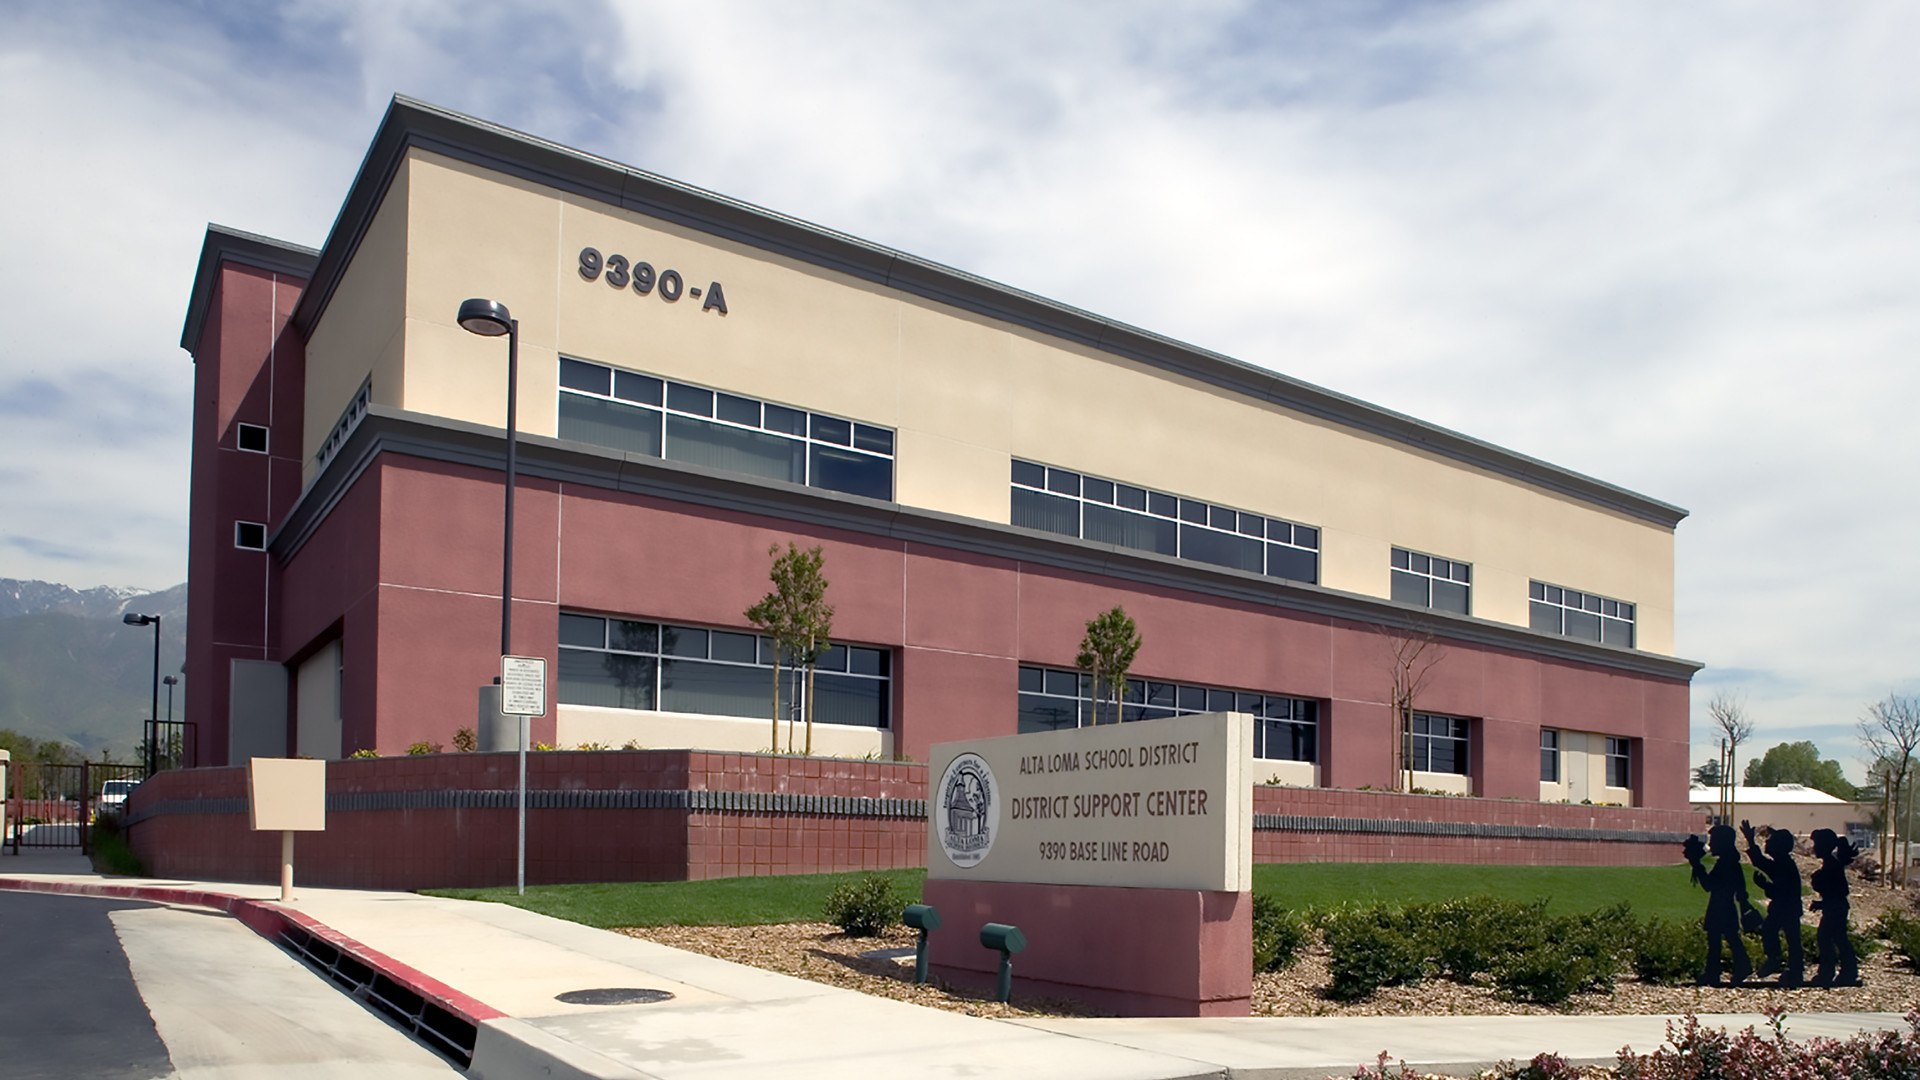 New District Support Center